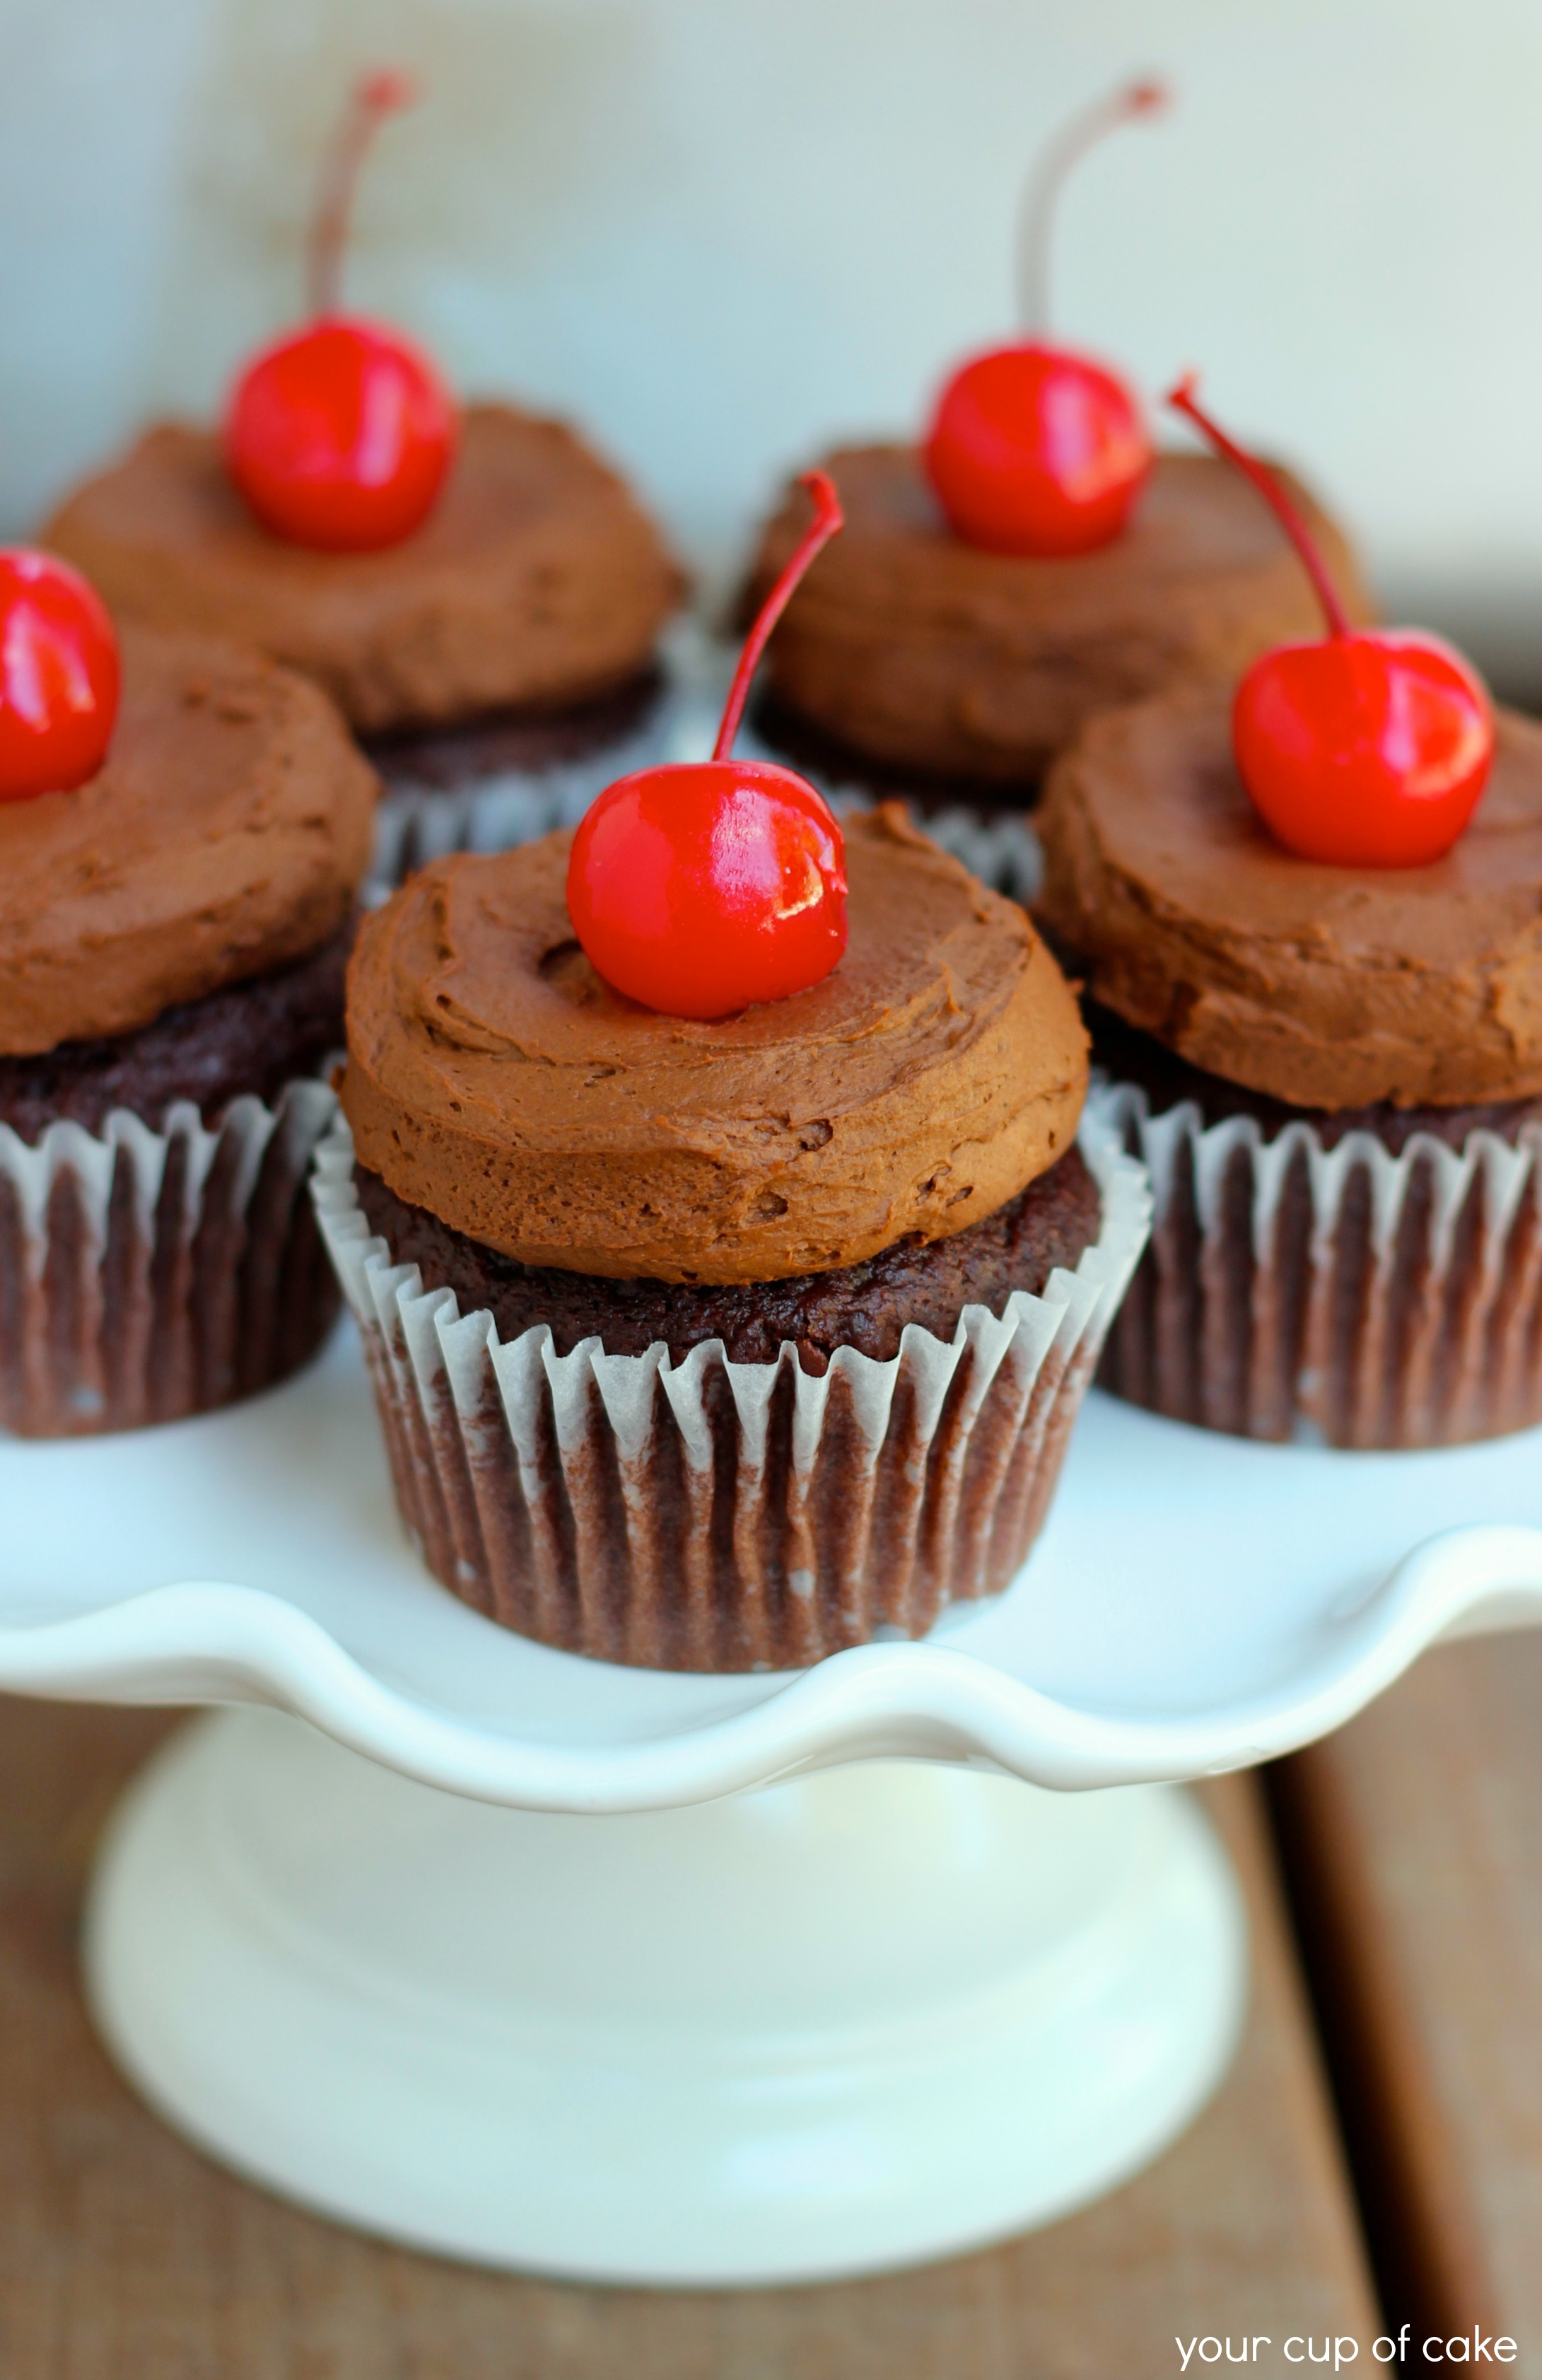 Chocolate Pudding Mix Frosting